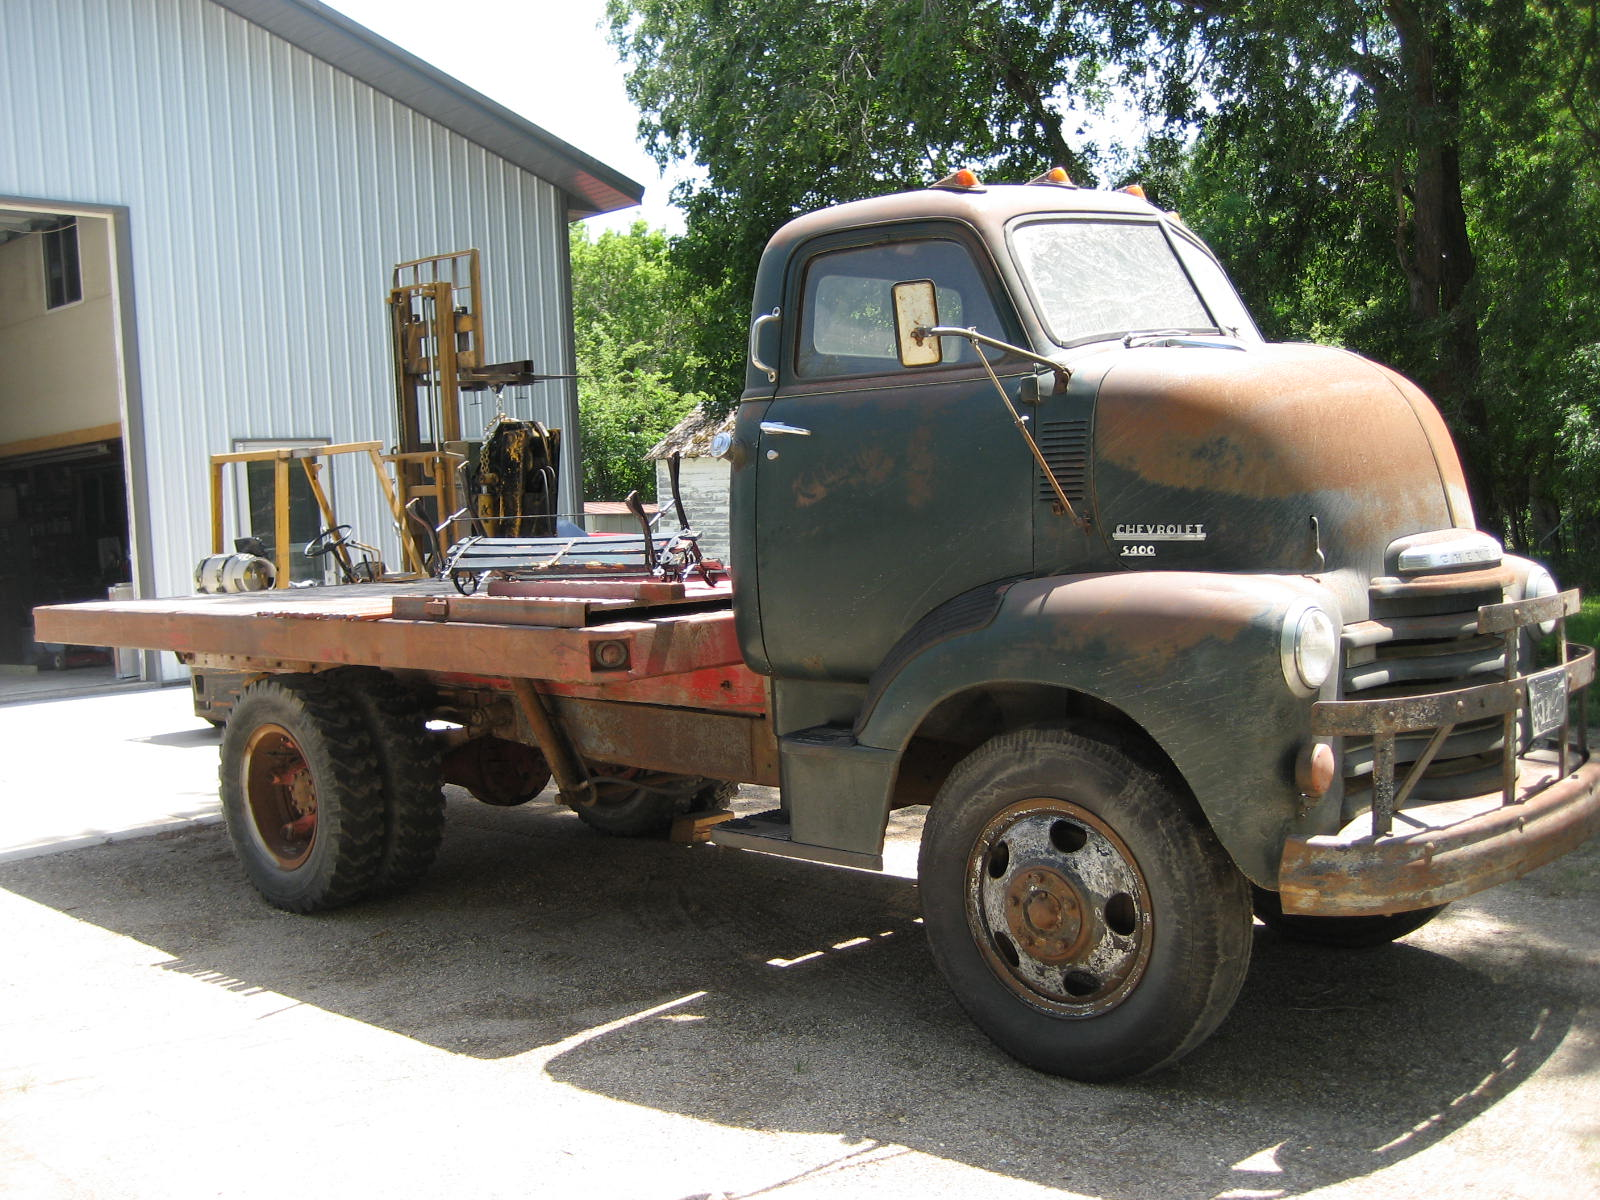 1972 Chevy Truck For Sale Craigslist Best New Car Reviews 2019 2020 1949 Parts 1950 Chevrolet Coe Flatbed Kustoms By